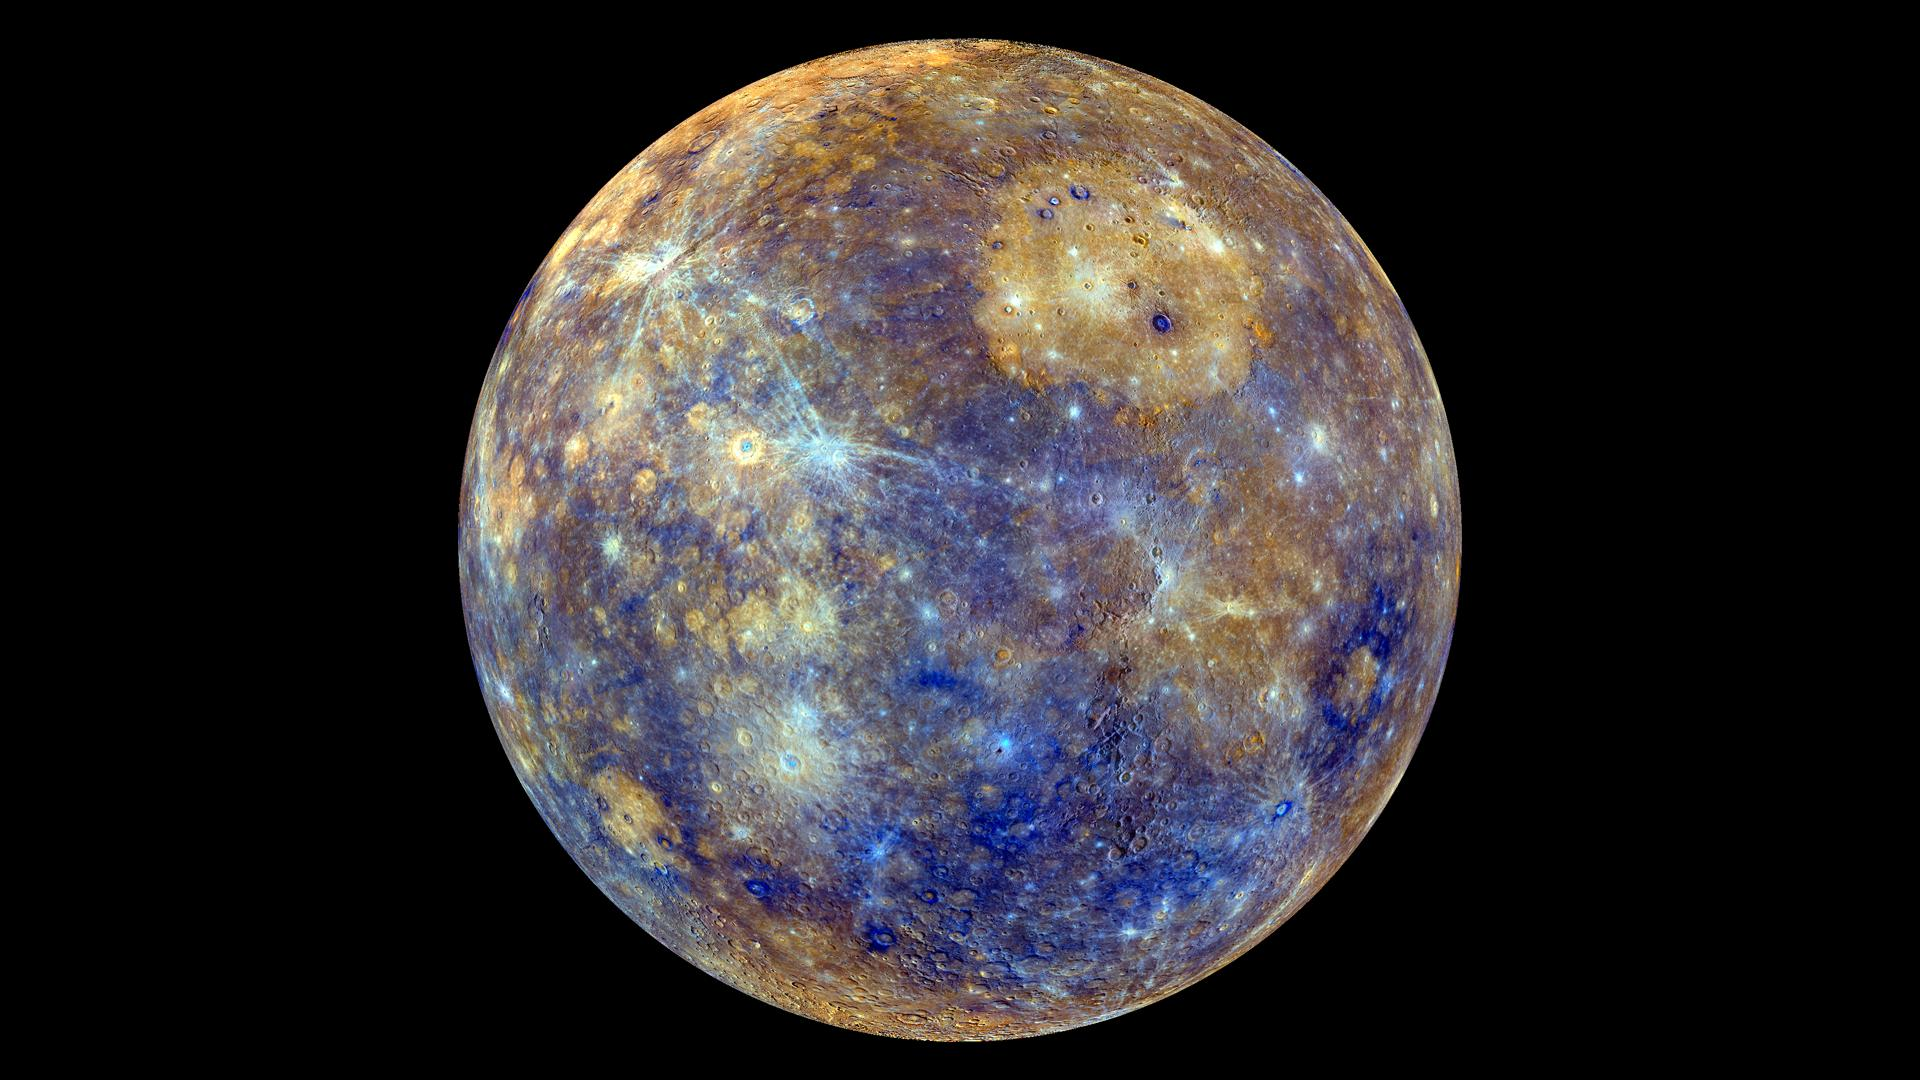 mercury the planet real color - photo #13